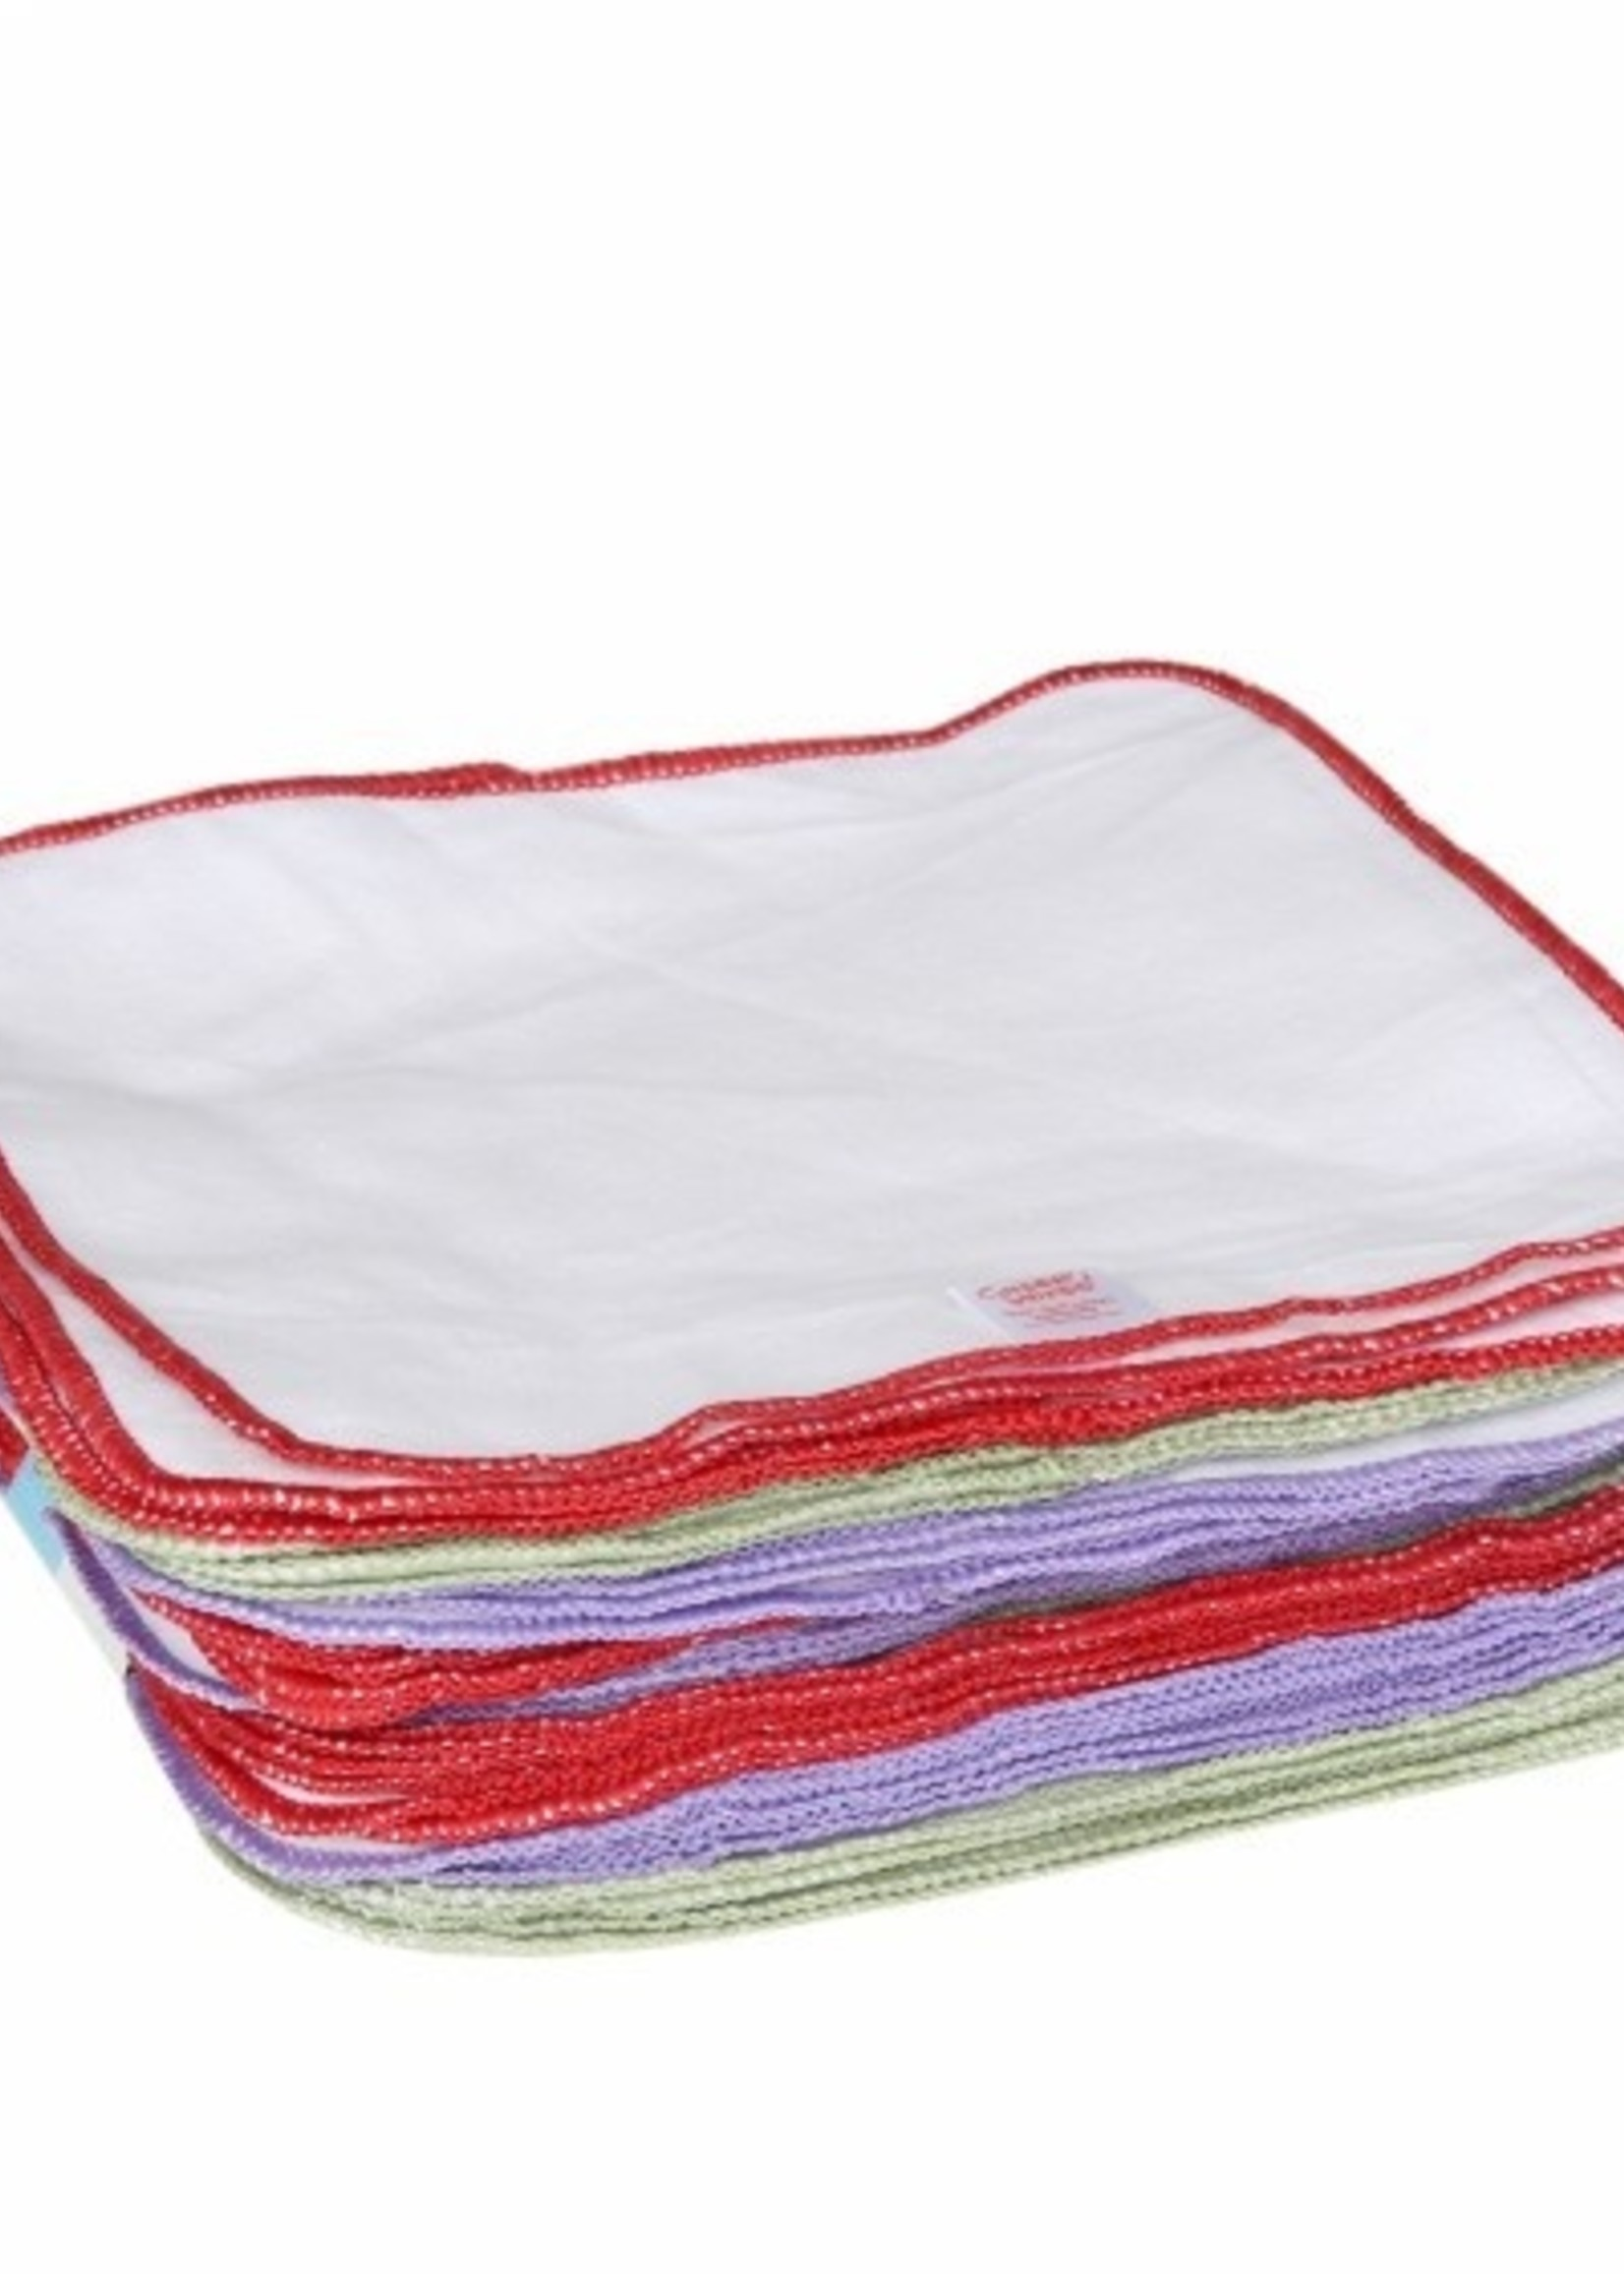 Cheeky Wipes Cotton Flannel Wipes - 25 pcs